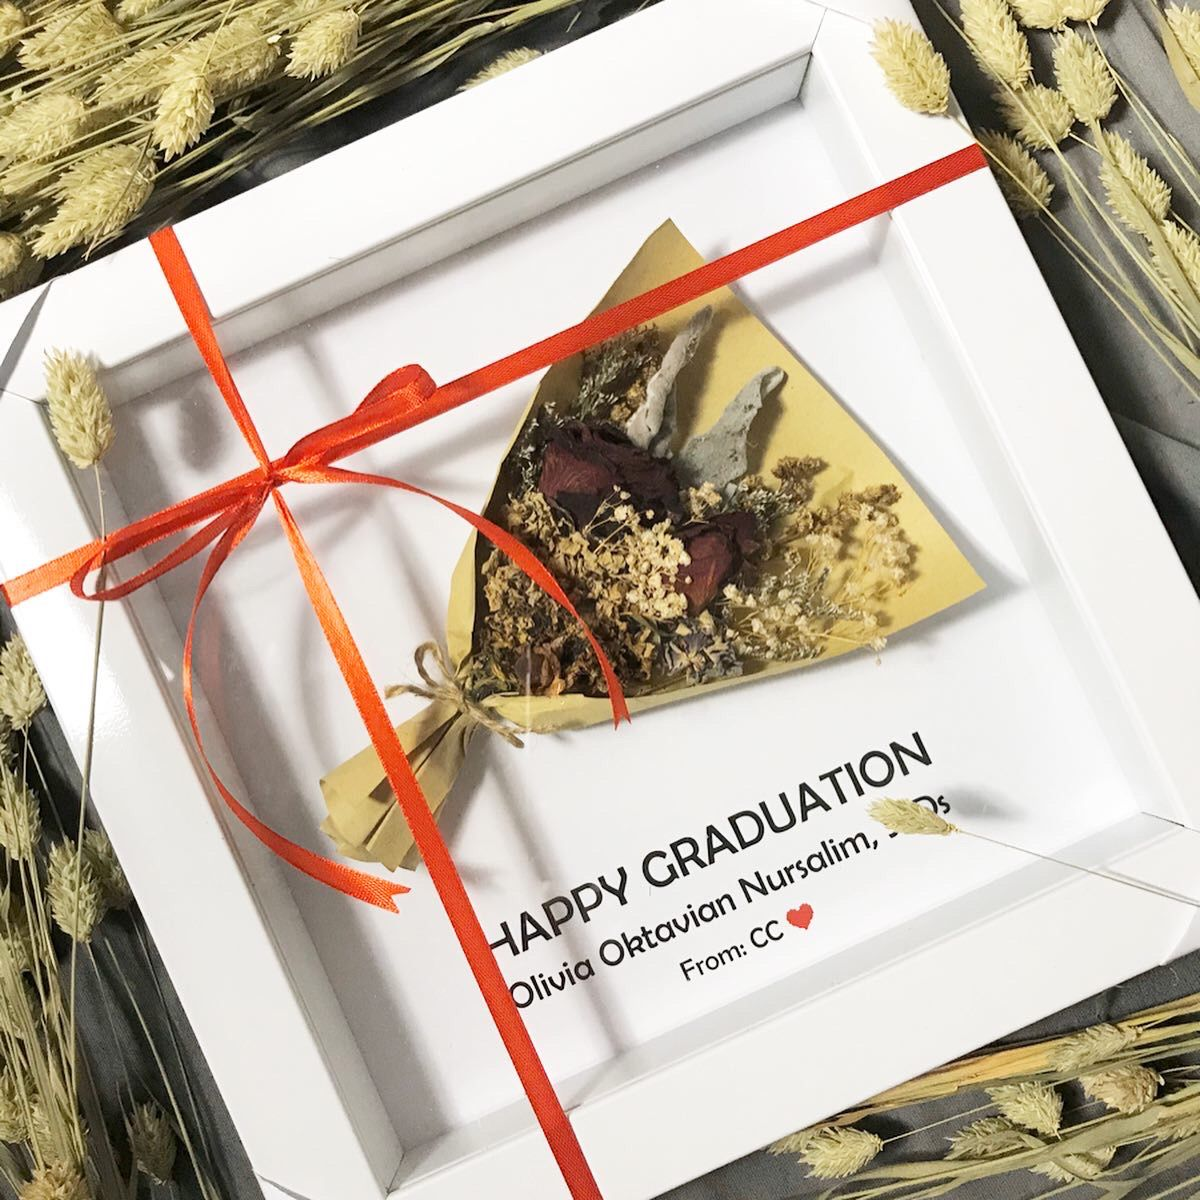 Dried Flowers In Frame Special Graduation Gift For Ms Olivia Create Your Own Frame Now Pengiriman Seluruh Indonesia Ide Hadiah Bunga Kering Bunga